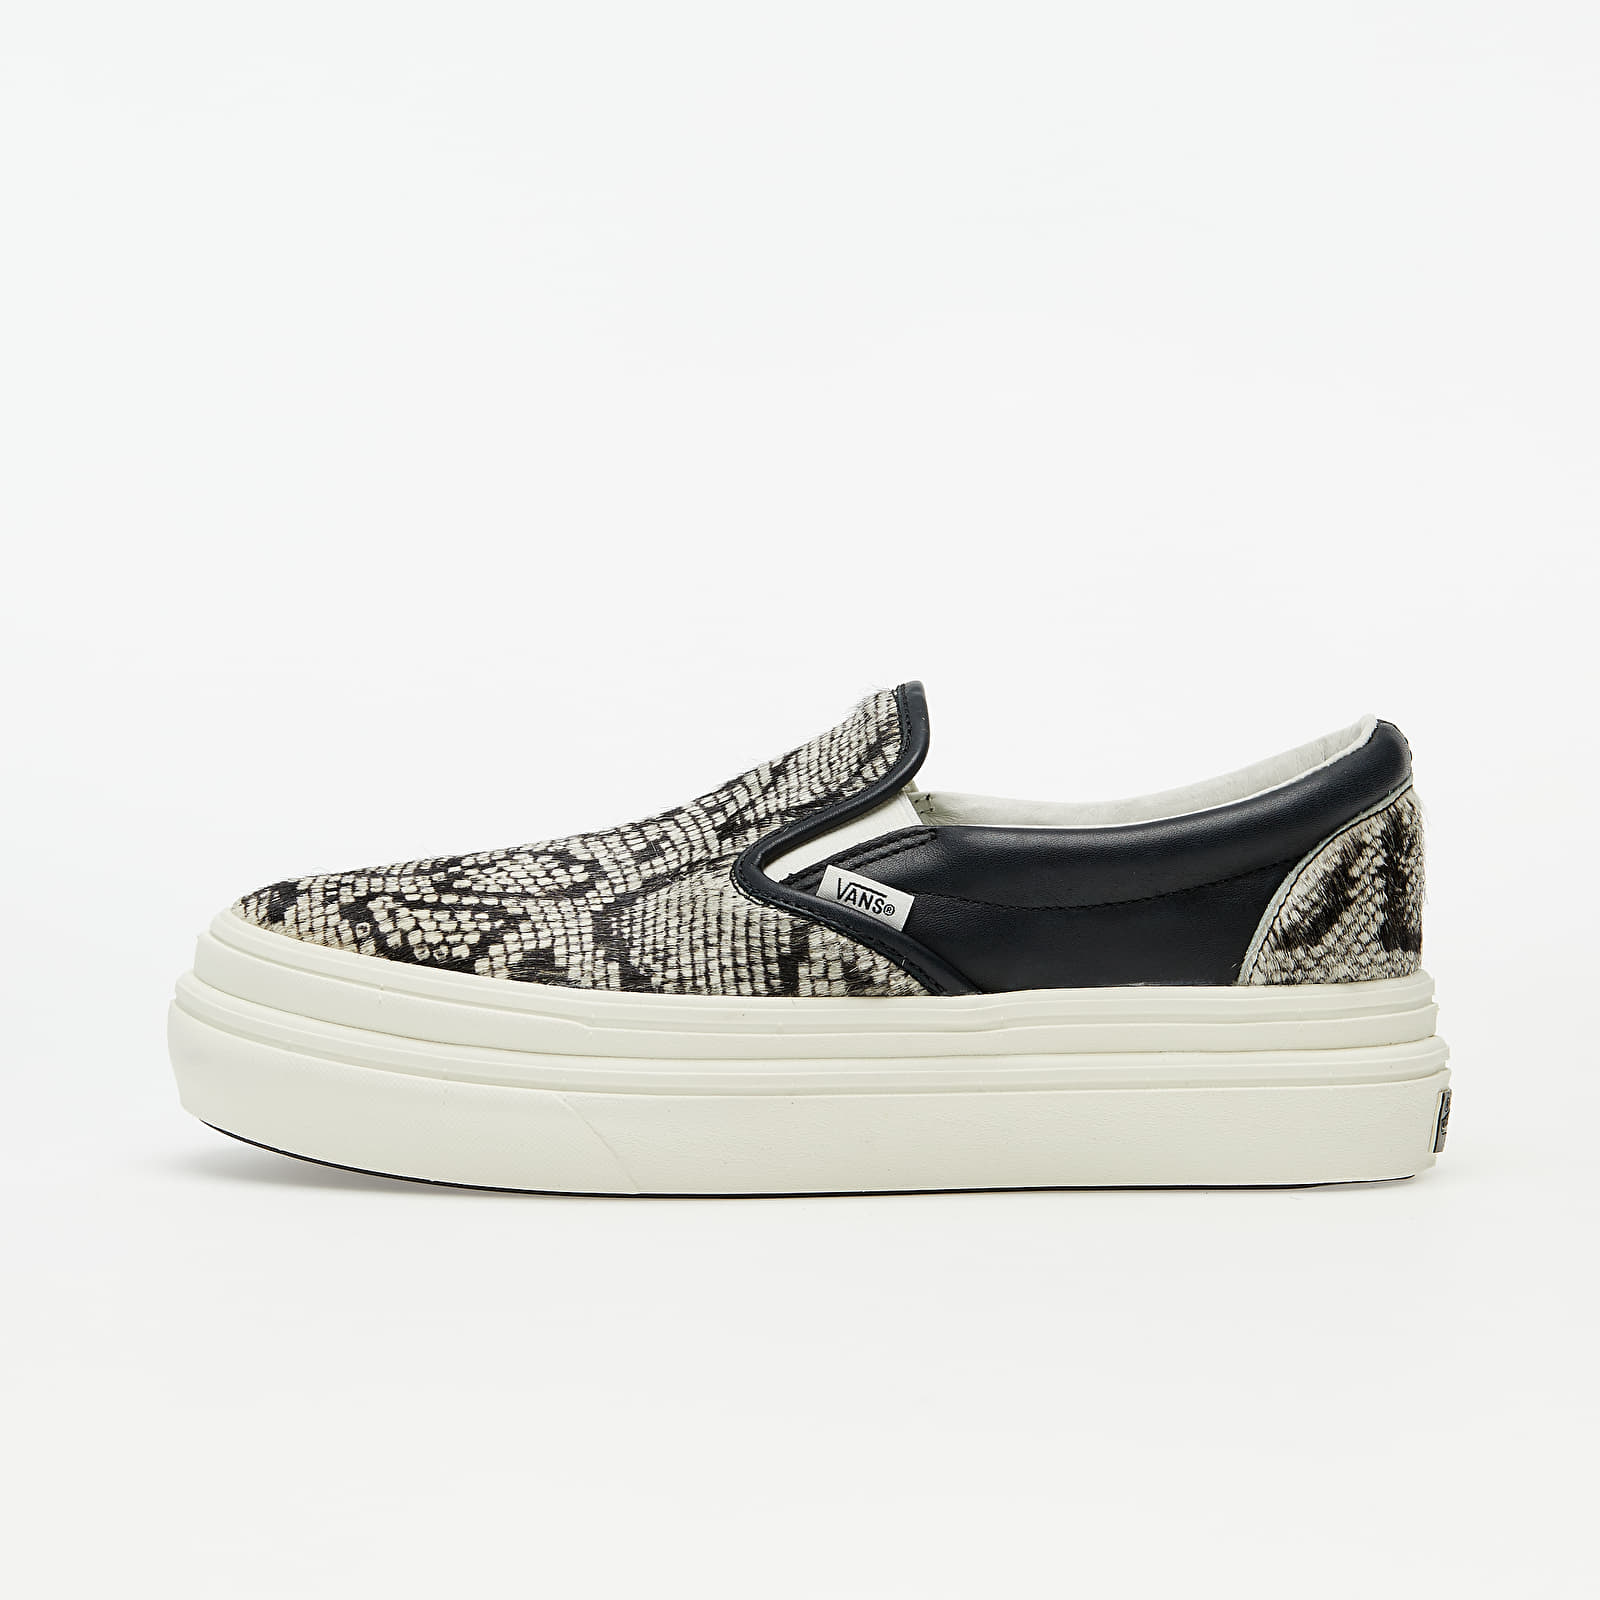 Vans Super ComfyCush Slip-On (Snake/ Pony) Black/ Marshmallow EUR 38